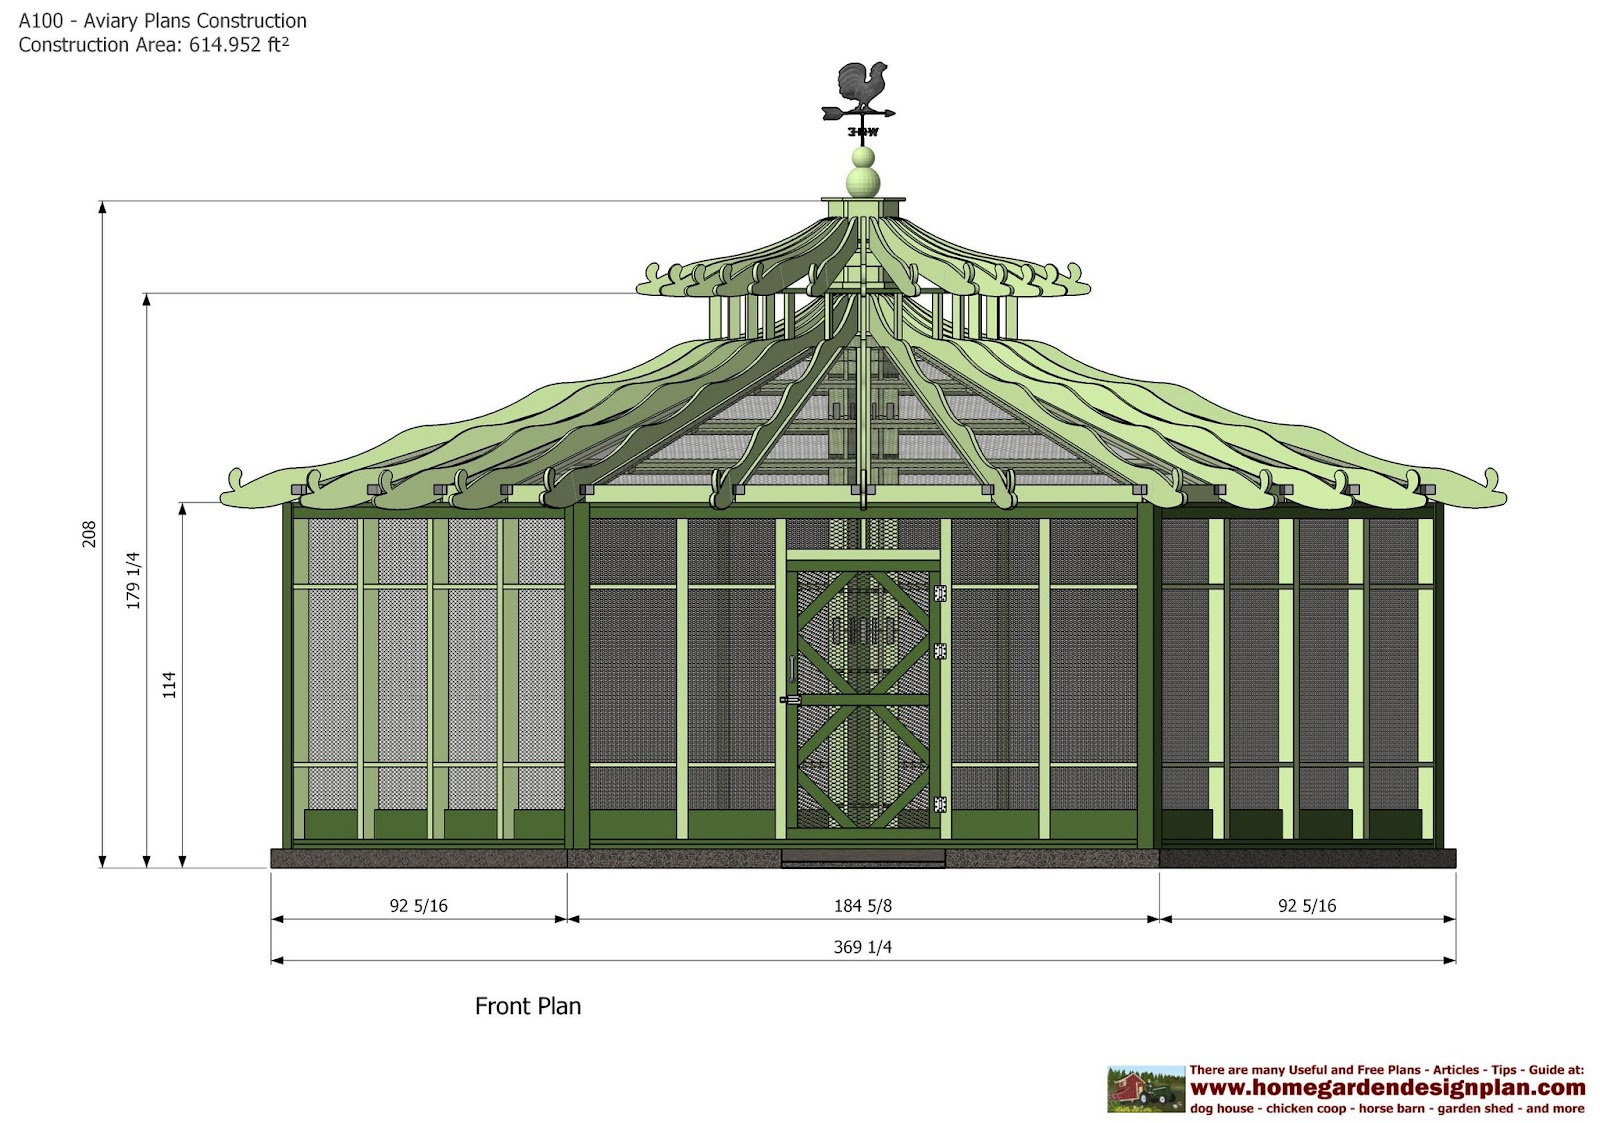 Home garden plans a100 aviary plans construction for Building a quail house